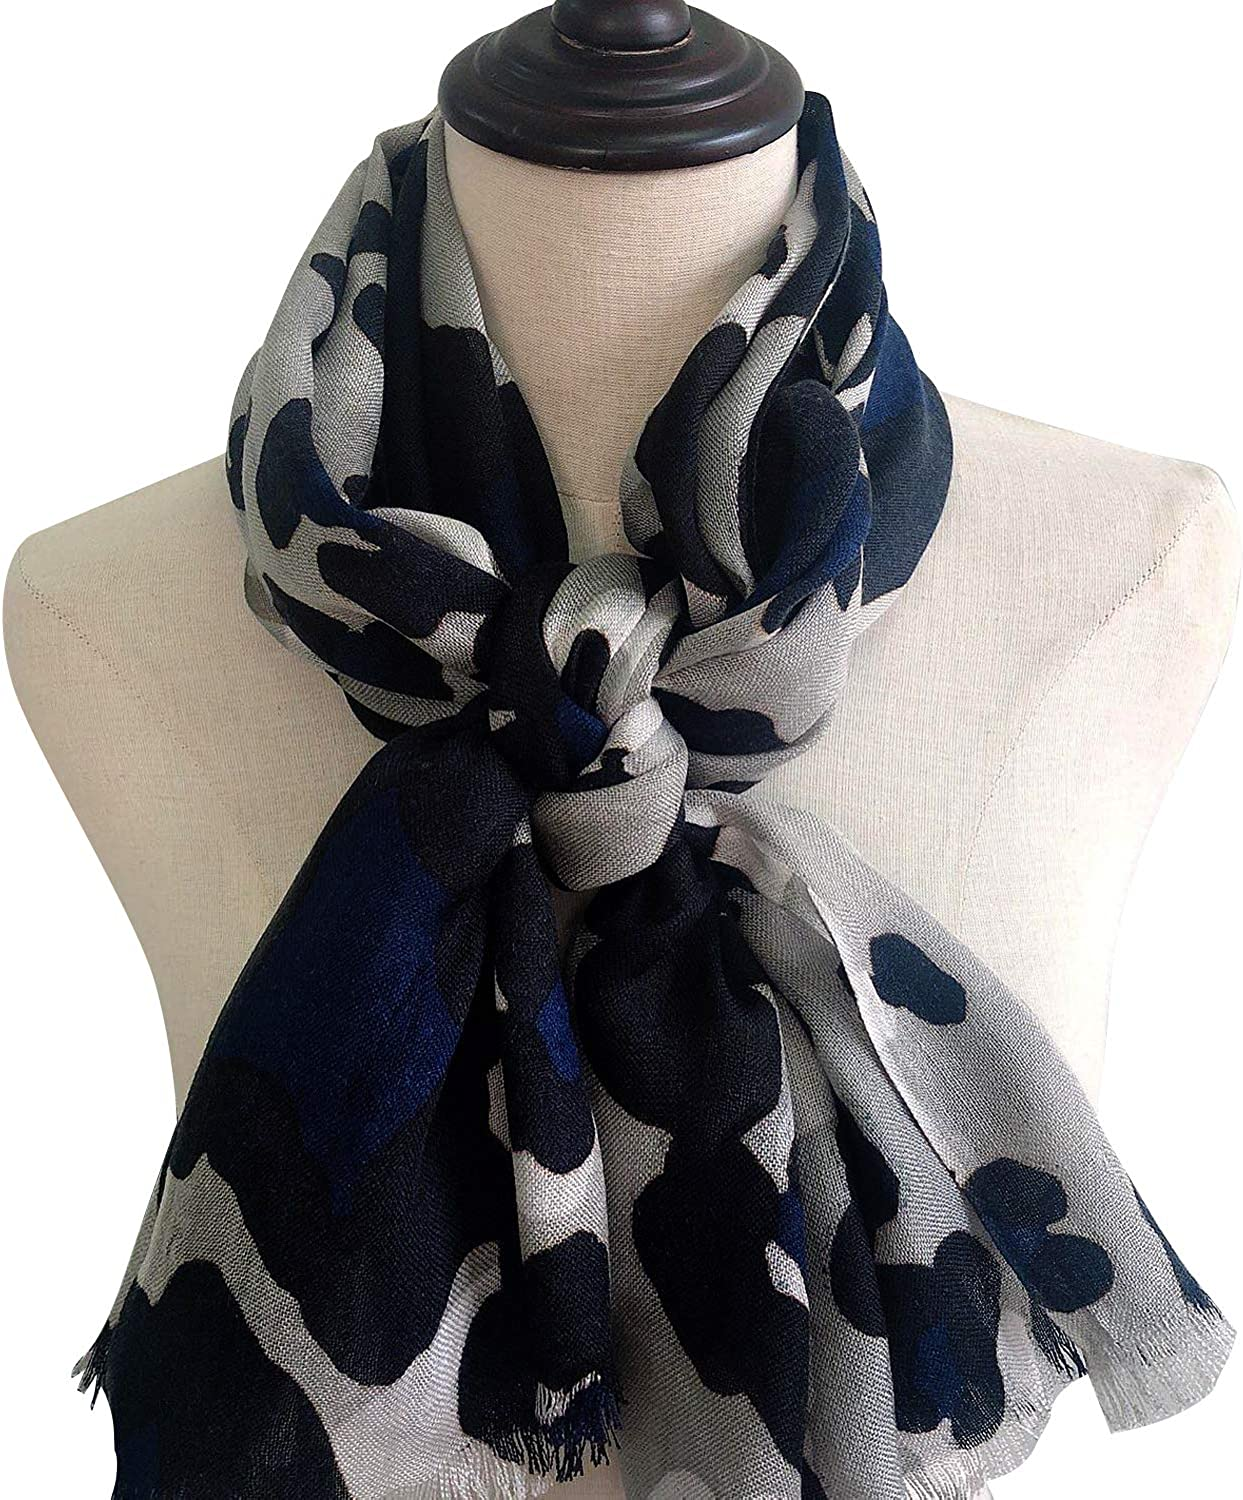 Scarf Printing Large Long Wrap Shawl with Tassel - Super Soft and Cozy Fashion Luxurious Classic Cashmere Feel all season Knitted Scarf for women and men by Faye Forest Gallery E03004